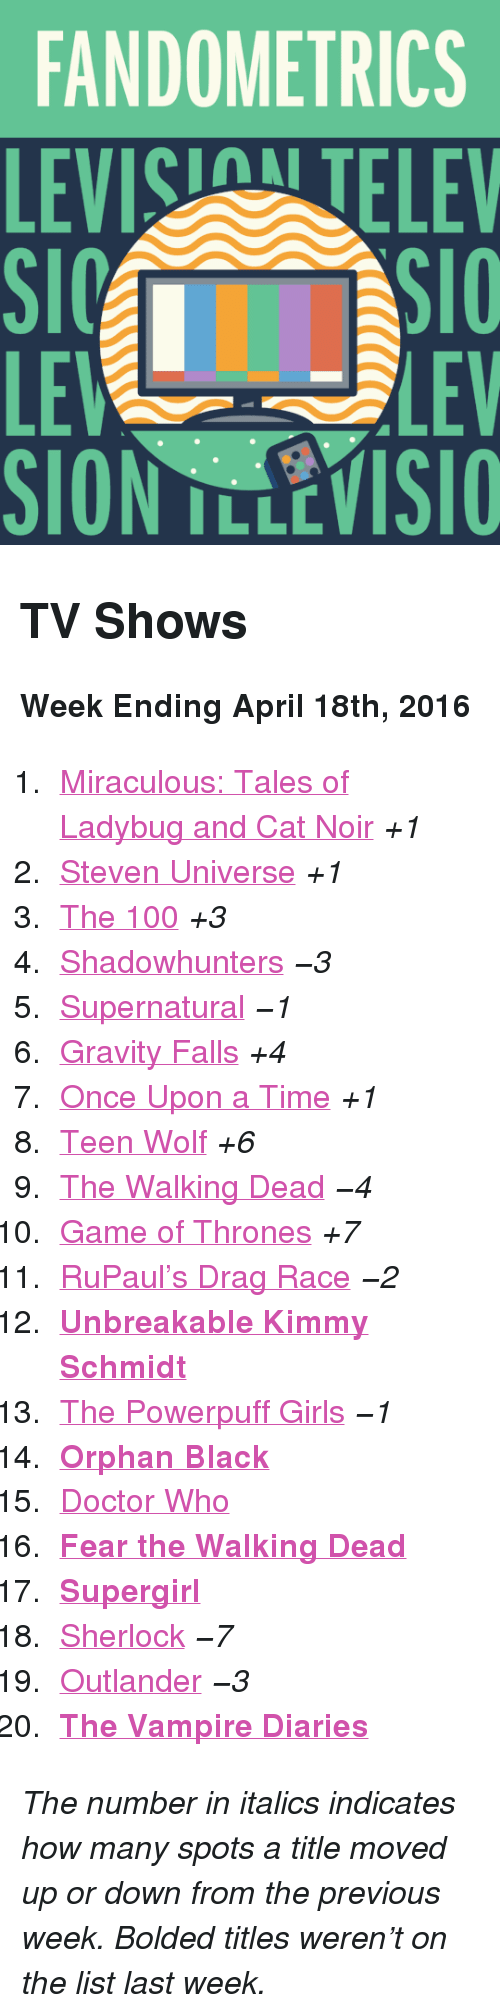 """Fear The Walking Dead: FANDOMETRICS  LEVIS TELEV  LE  SION TLLEVISIO  LEV <h2>TV Shows</h2><p><b>Week Ending April 18th, 2016</b></p><ol><li><a href=""""http://www.tumblr.com/search/miraculous%20ladybug"""">Miraculous: Tales of Ladybug and Cat Noir</a><i>+1</i></li>  <li><a href=""""http://www.tumblr.com/search/steven%20universe"""">Steven Universe</a><i>+1</i></li>  <li><a href=""""http://www.tumblr.com/search/the%20100"""">The 100</a><i>+3</i></li>  <li><a href=""""http://www.tumblr.com/search/shadowhunters"""">Shadowhunters</a><i>−3</i></li>  <li><a href=""""http://www.tumblr.com/search/supernatural"""">Supernatural</a><i>−1</i></li>  <li><a href=""""http://www.tumblr.com/search/gravity%20falls"""">Gravity Falls</a><i>+4</i></li>  <li><a href=""""http://www.tumblr.com/search/ouat"""">Once Upon a Time</a><i>+1</i></li>  <li><a href=""""http://www.tumblr.com/search/teen%20wolf"""">Teen Wolf</a><i>+6</i></li>  <li><a href=""""http://www.tumblr.com/search/the%20walking%20dead"""">The Walking Dead</a><i>−4</i></li>  <li><a href=""""http://www.tumblr.com/search/game%20of%20thrones"""">Game of Thrones</a><i>+7</i></li>  <li><a href=""""http://www.tumblr.com/search/rupaul's%20drag%20race"""">RuPaul&rsquo;s Drag Race</a><i>−2</i></li>  <li><a href=""""http://www.tumblr.com/search/unbreakable%20kimmy%20schmidt""""><b>Unbreakable Kimmy Schmidt</b></a></li>  <li><a href=""""http://www.tumblr.com/search/powerpuff%20girls"""">The Powerpuff Girls</a><i>−1</i></li>  <li><a href=""""http://www.tumblr.com/search/orphan%20black""""><b>Orphan Black</b></a></li>  <li><a href=""""http://www.tumblr.com/search/doctor%20who"""">Doctor Who</a></li>  <li><a href=""""http://www.tumblr.com/search/fear%20the%20walking%20dead""""><b>Fear the Walking Dead</b></a></li>  <li><a href=""""http://www.tumblr.com/search/supergirl""""><b>Supergirl</b></a></li>  <li><a href=""""http://www.tumblr.com/search/sherlock"""">Sherlock</a><i>−7</i></li>  <li><a href=""""http://www.tumblr.com/search/outlander"""">Outlander</a><i>−3</i></li>  <li><a href=""""http://www.tumblr.com/search/the%20vampire%20diaries""""><b>The Vampire D"""